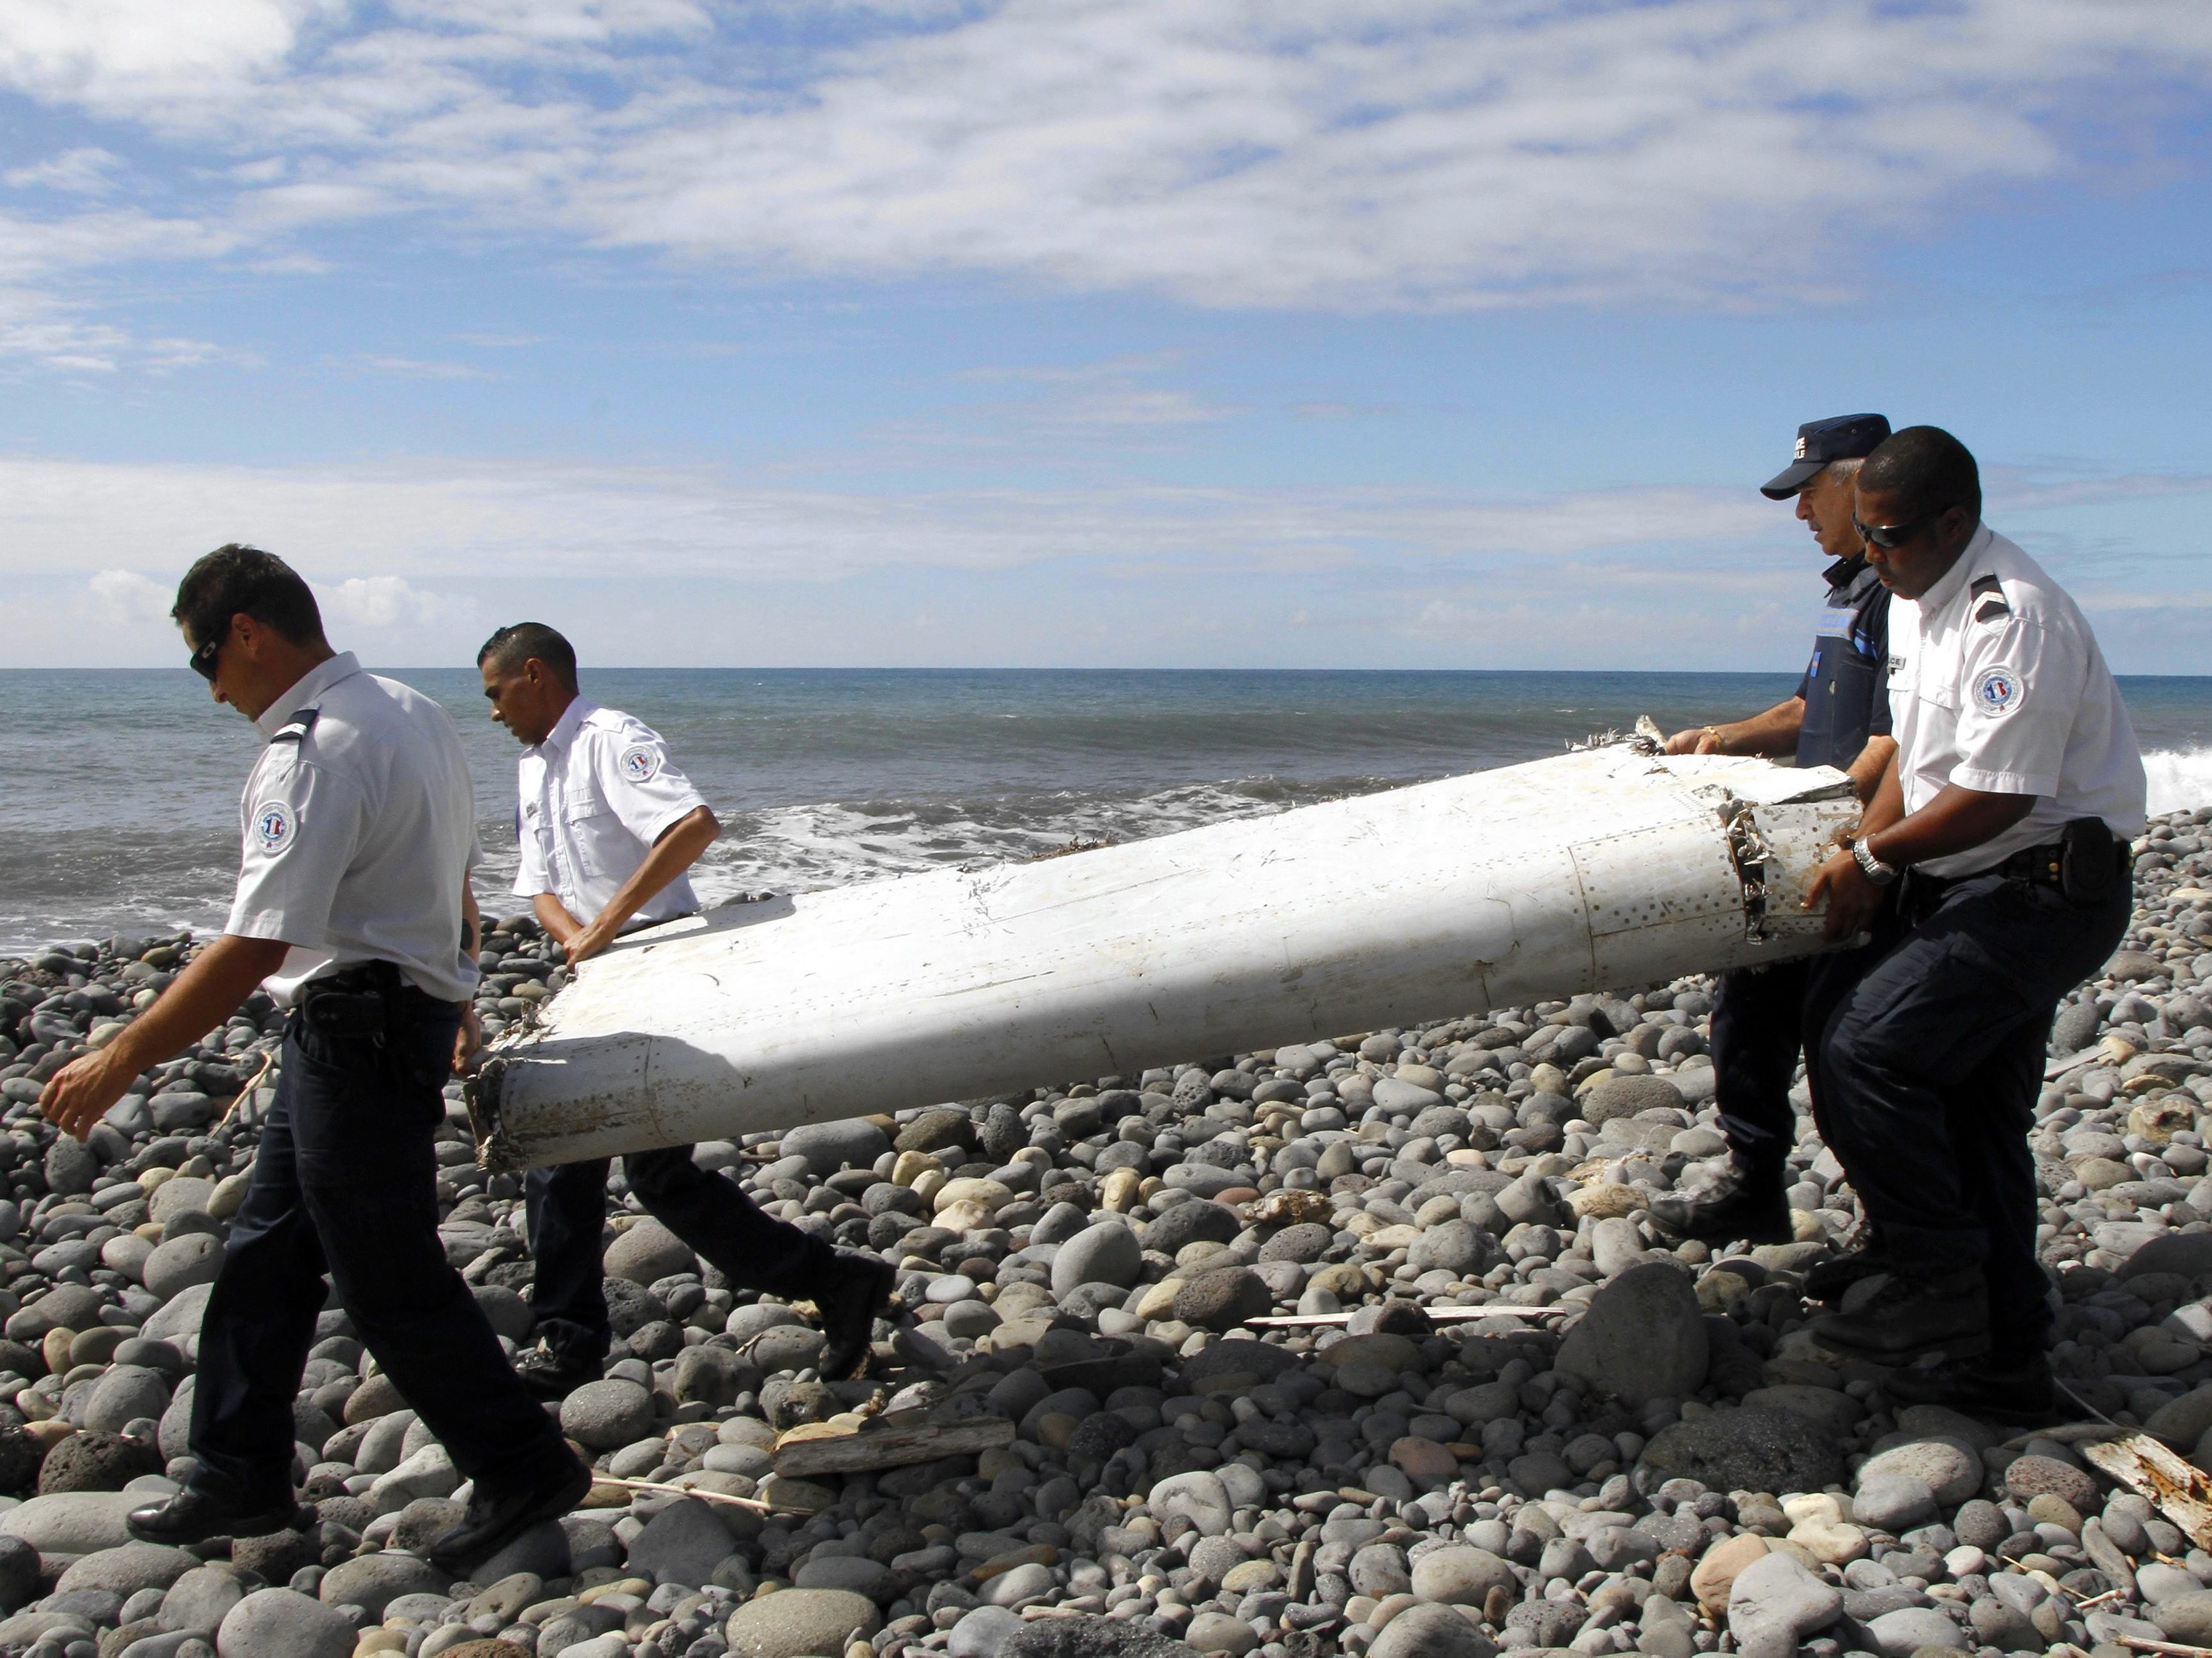 No One at Controls When MH370 Crashed